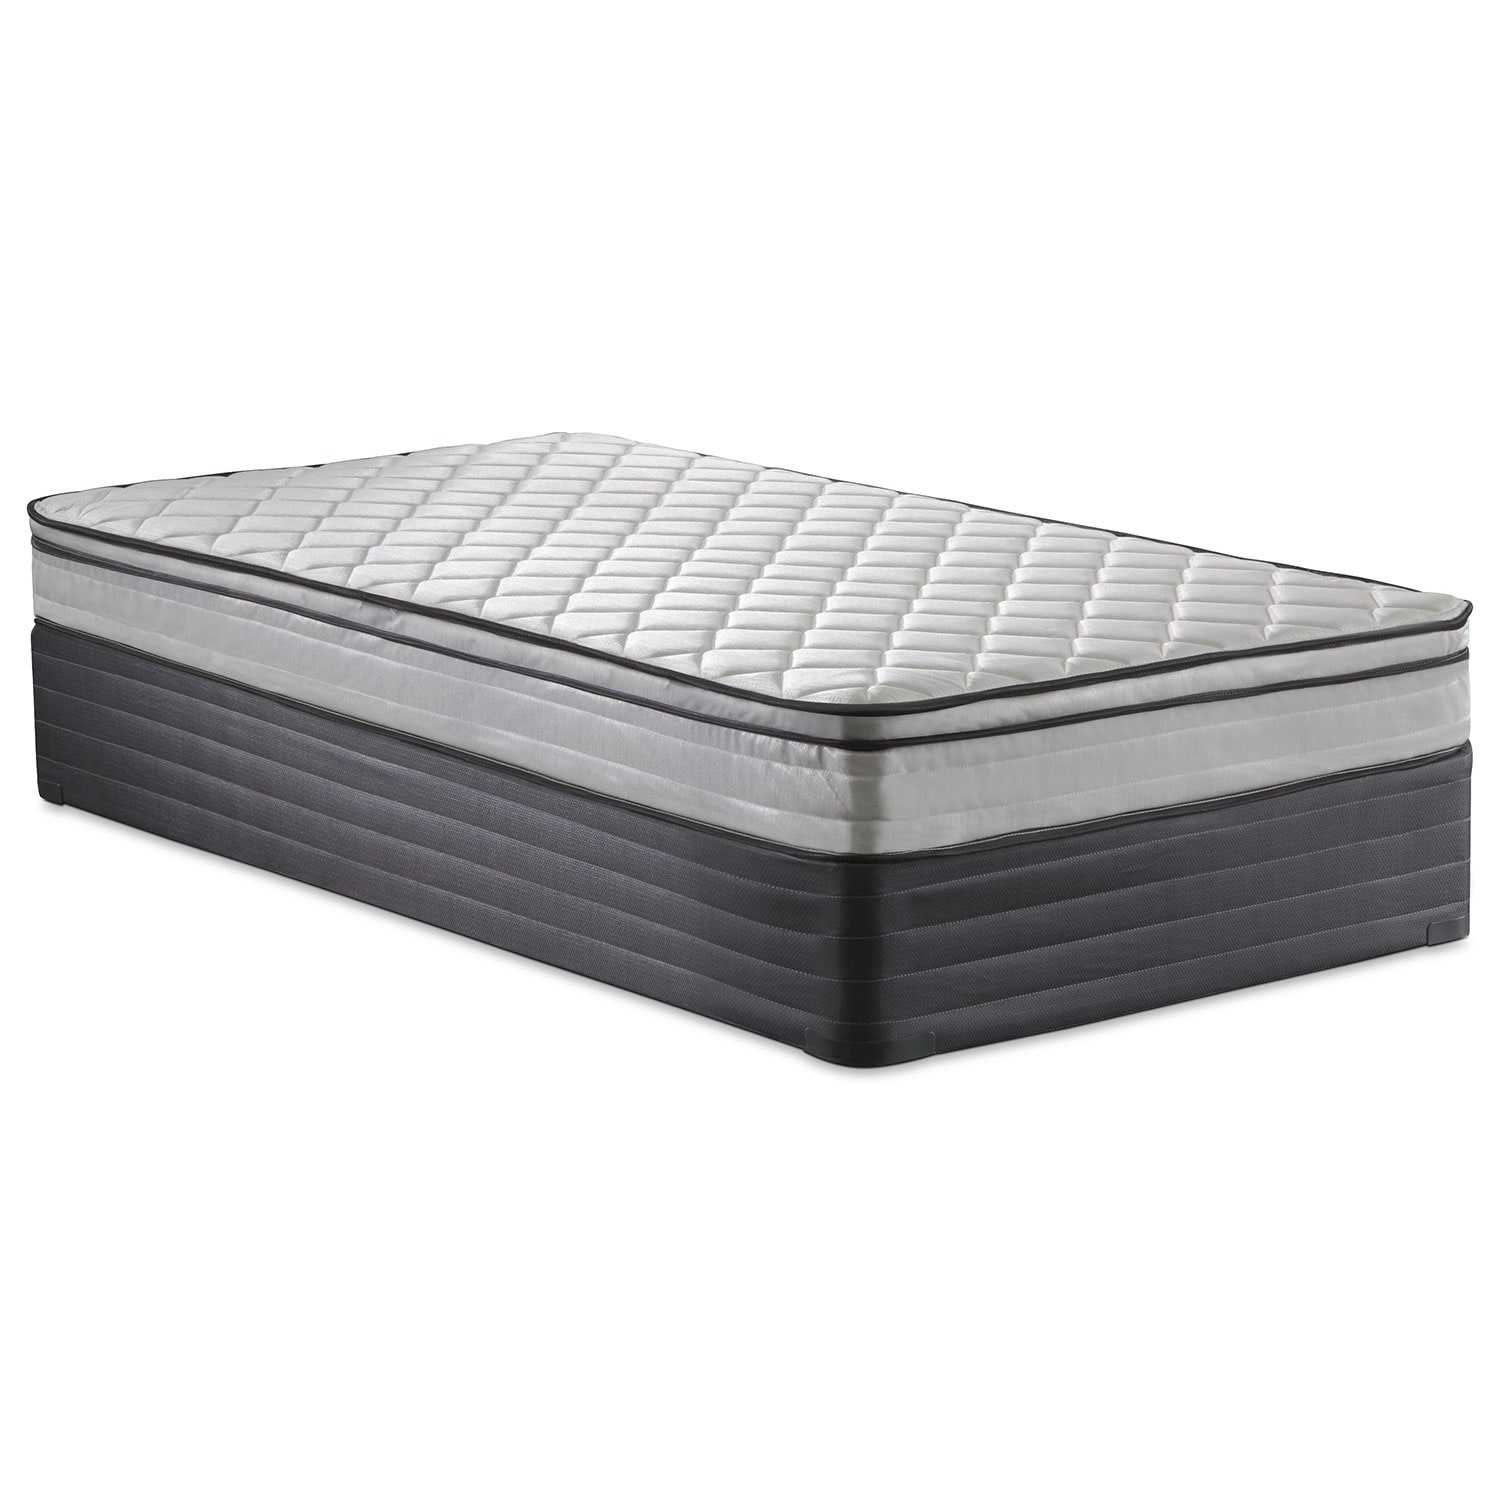 Mattresses and Bedding - Mirage Medium Firm Twin Mattress and Foundation Set